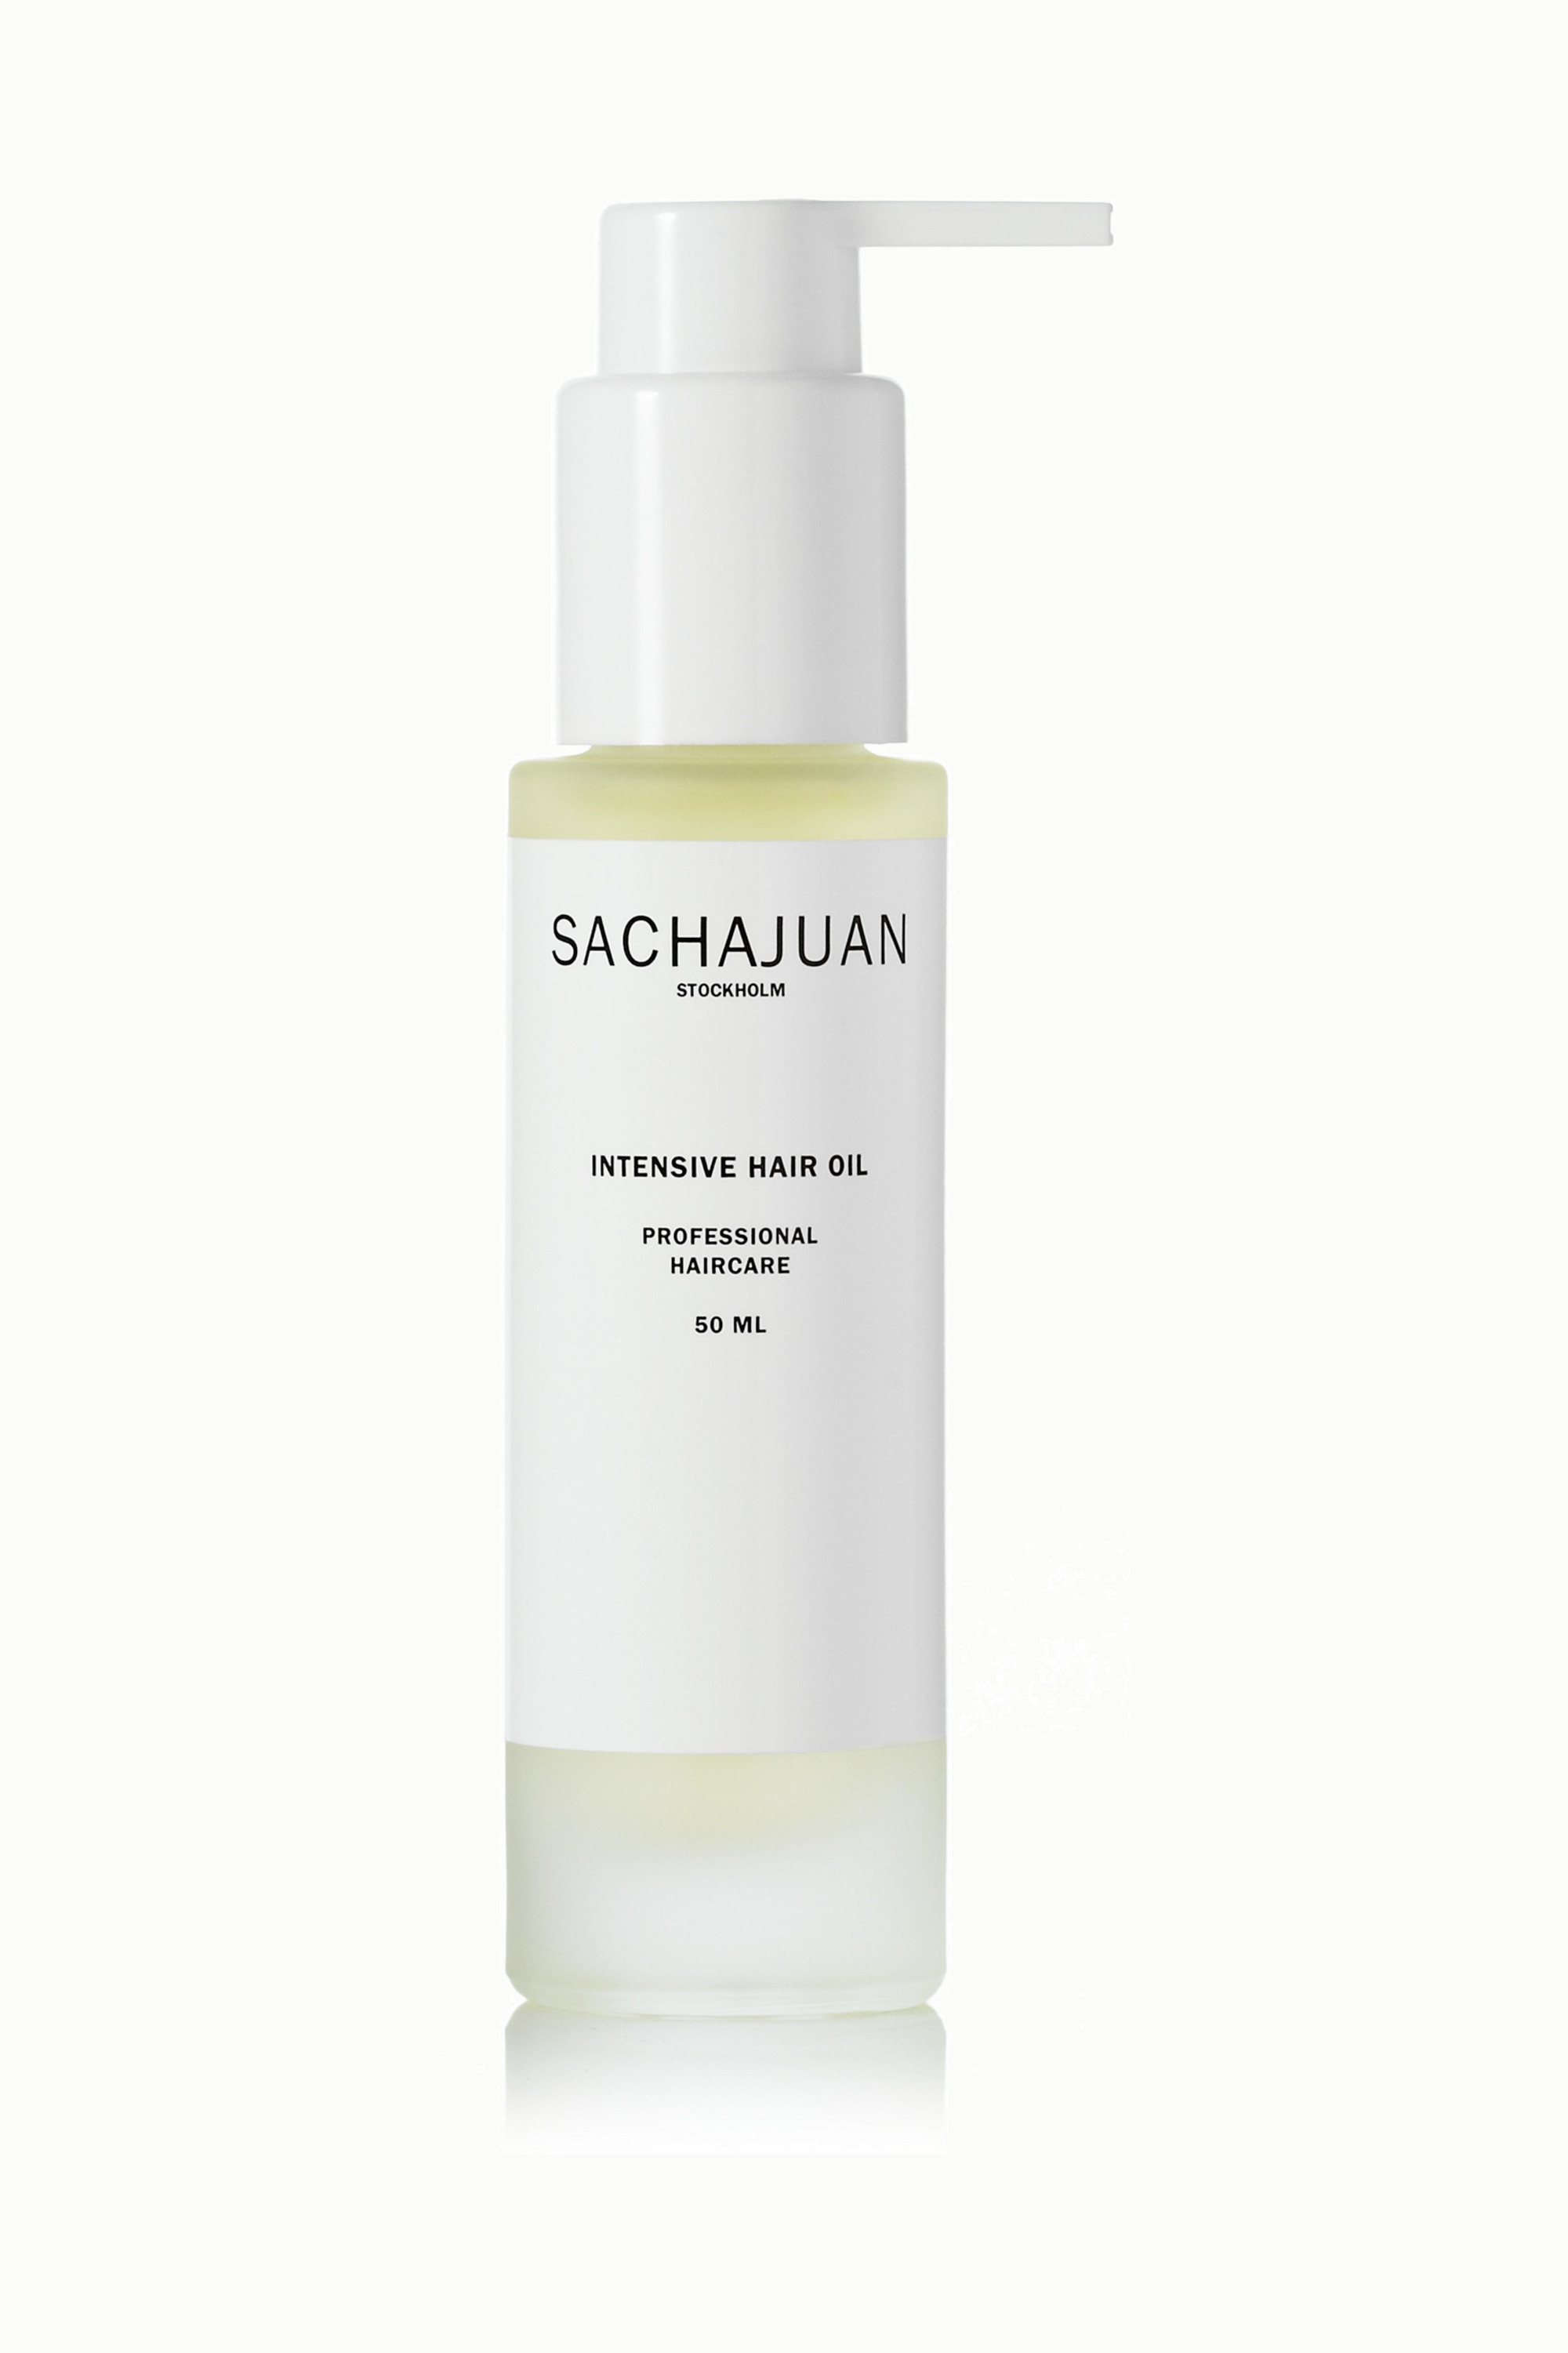 SACHAJUAN Intensive Hair Oil, 50ml